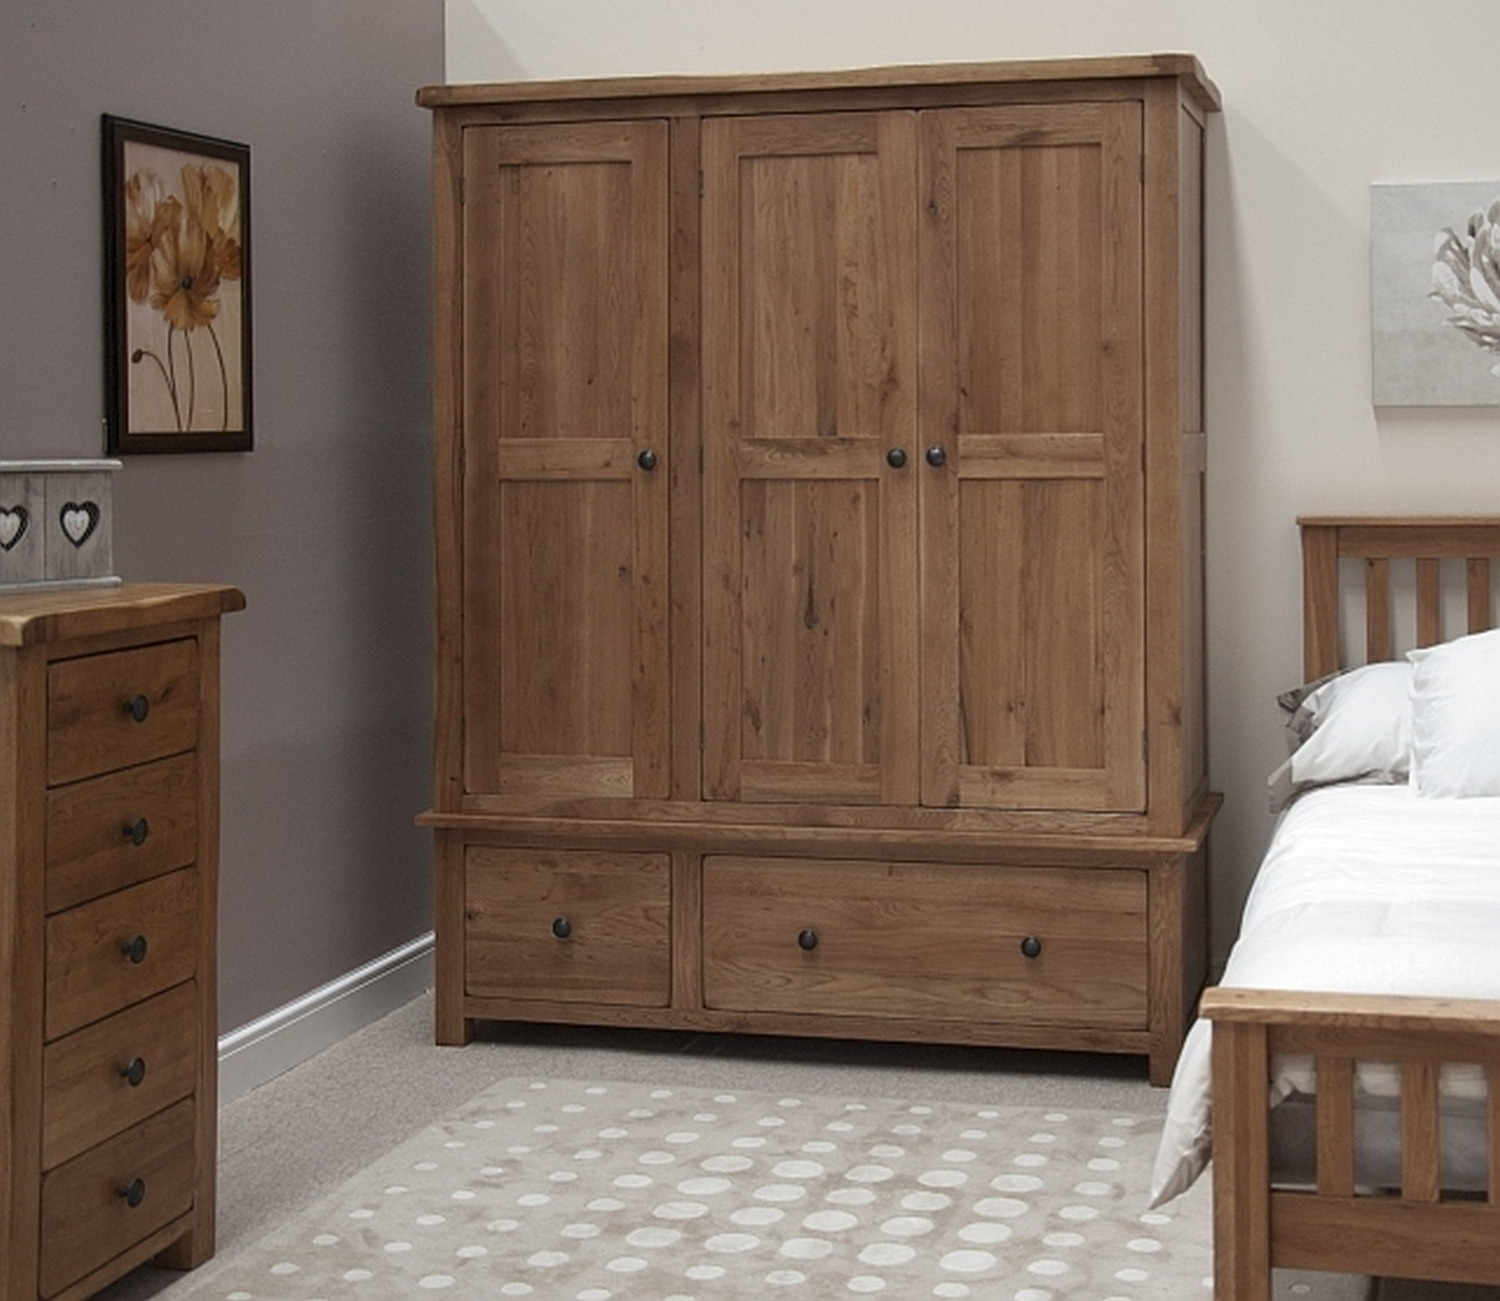 Fashionable Oak Wardrobes With Drawers And Shelves Regarding Furniture : Bedroom Furniture Armoire Sliding Mirror Wardrobe (View 5 of 15)